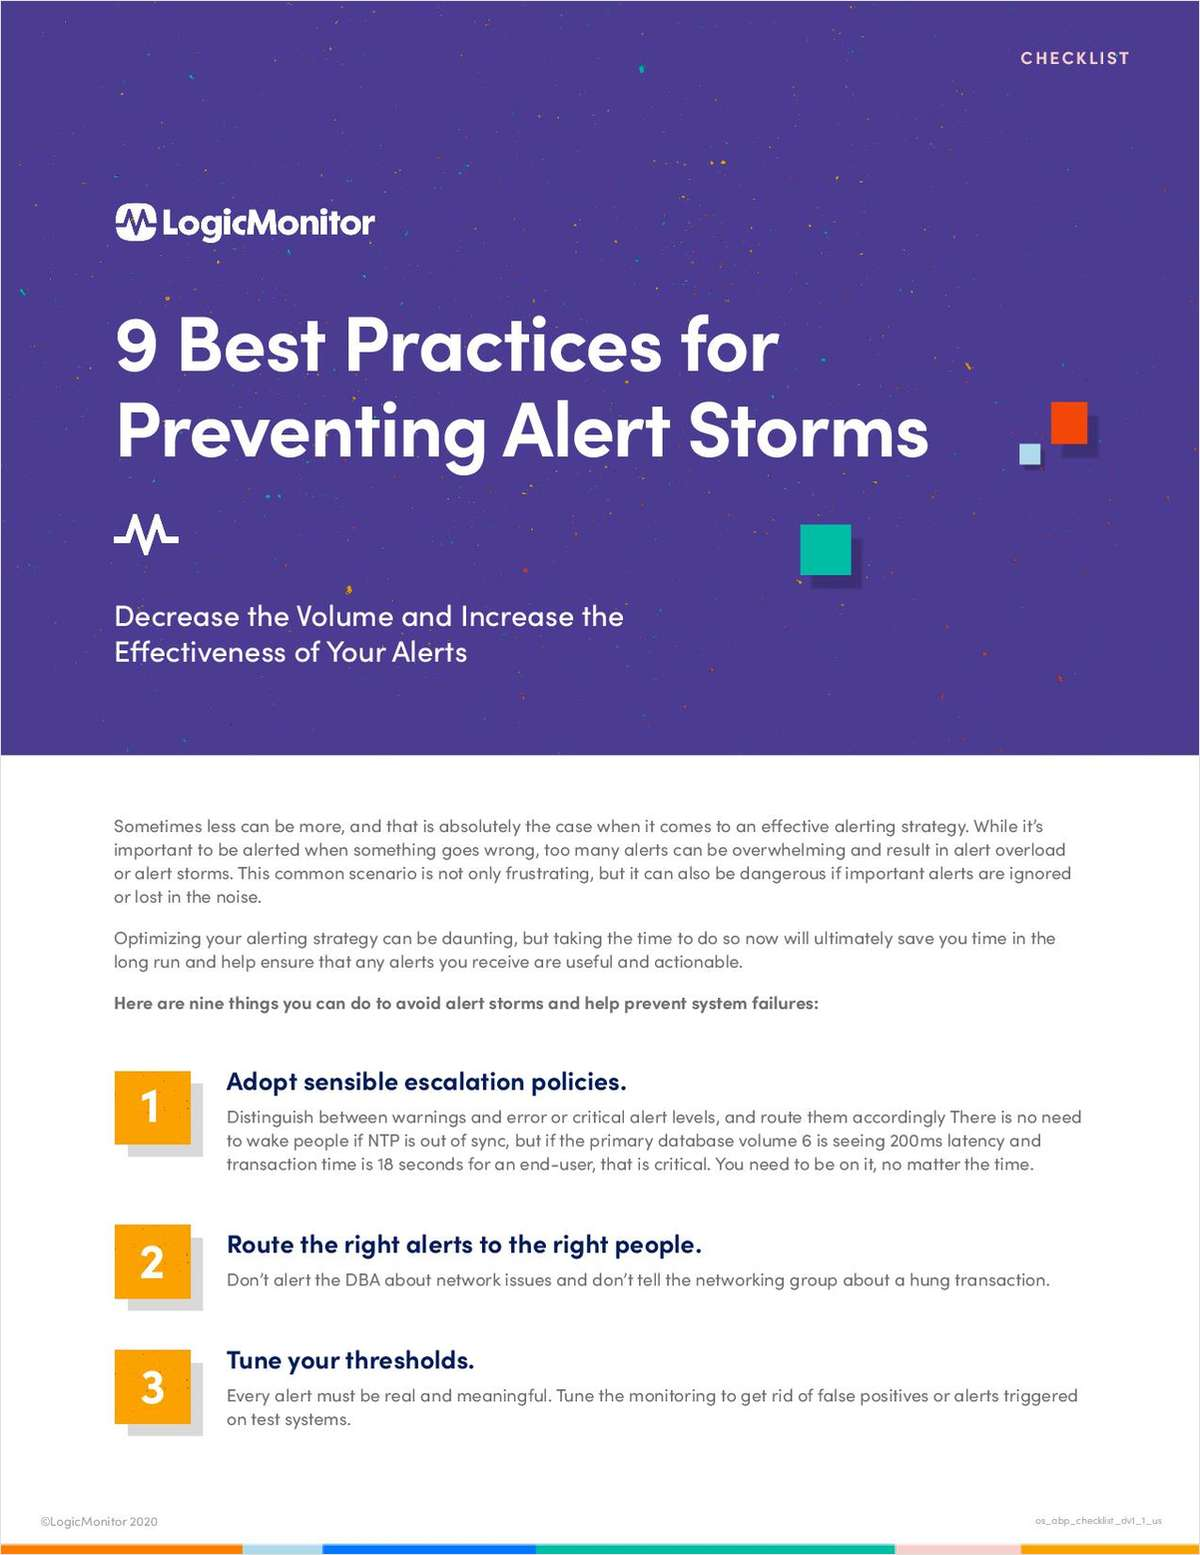 9 Best Practices for Preventing Alert Storms